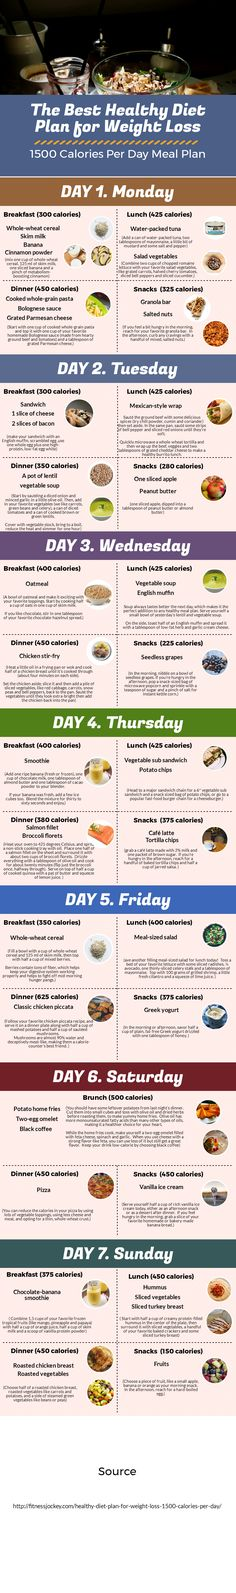 1500 Calorie per day meal plan for healthy weight loss.